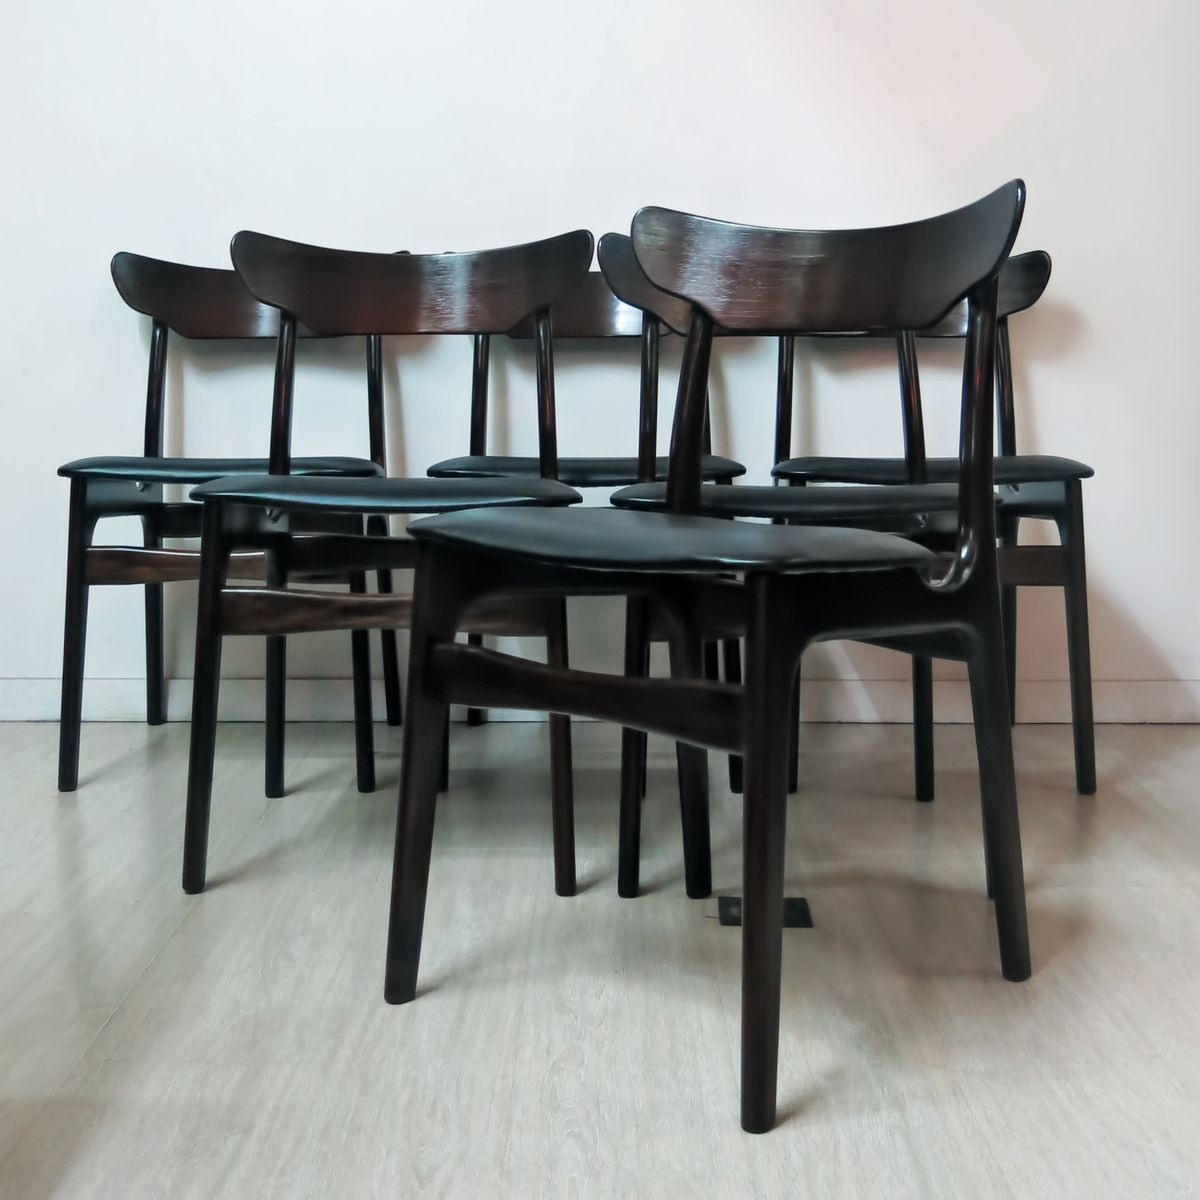 esszimmerst hle von schionning elgaard 1960 6er set bei pamono kaufen. Black Bedroom Furniture Sets. Home Design Ideas